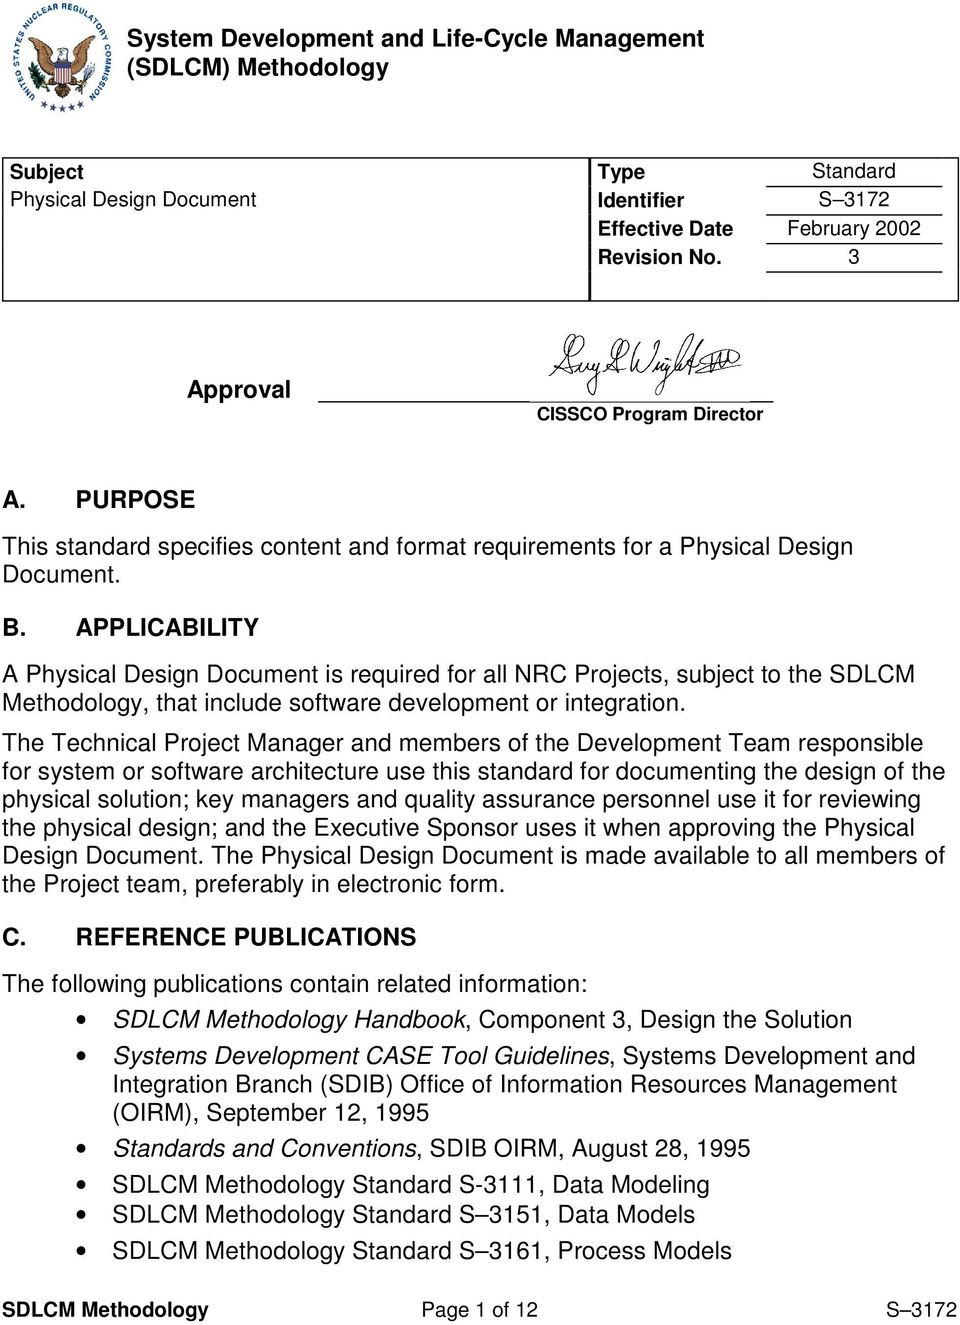 APPLICABILITY A Physical Design Document is required for all NRC Projects, subject to the SDLCM Methodology, that include software development or integration.